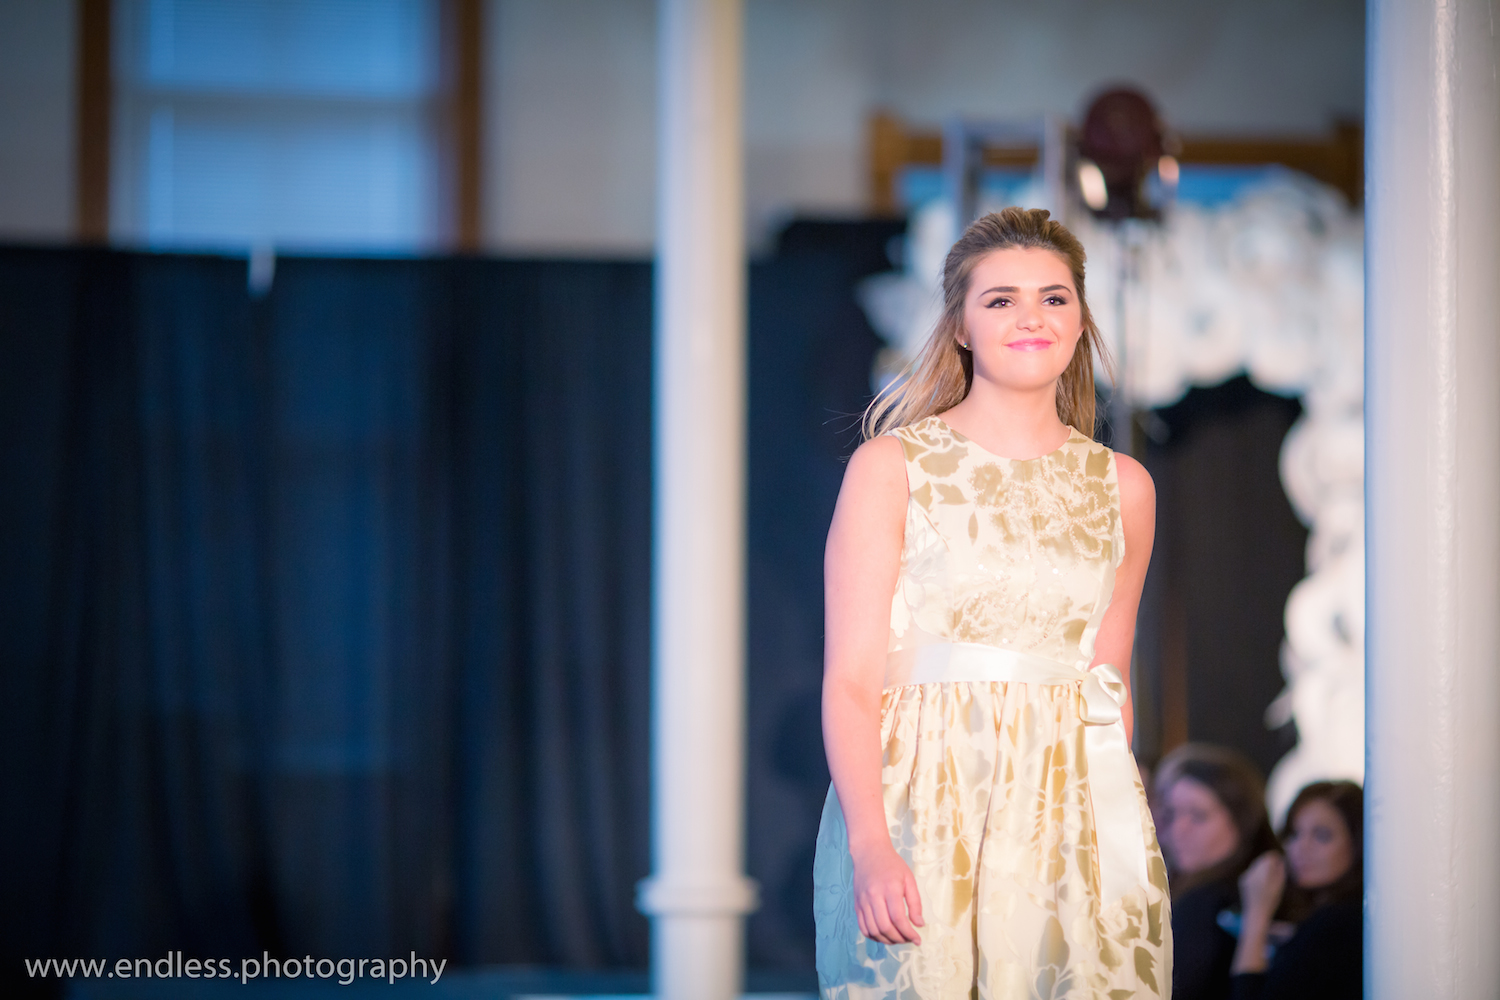 provo fashion week-121.jpg